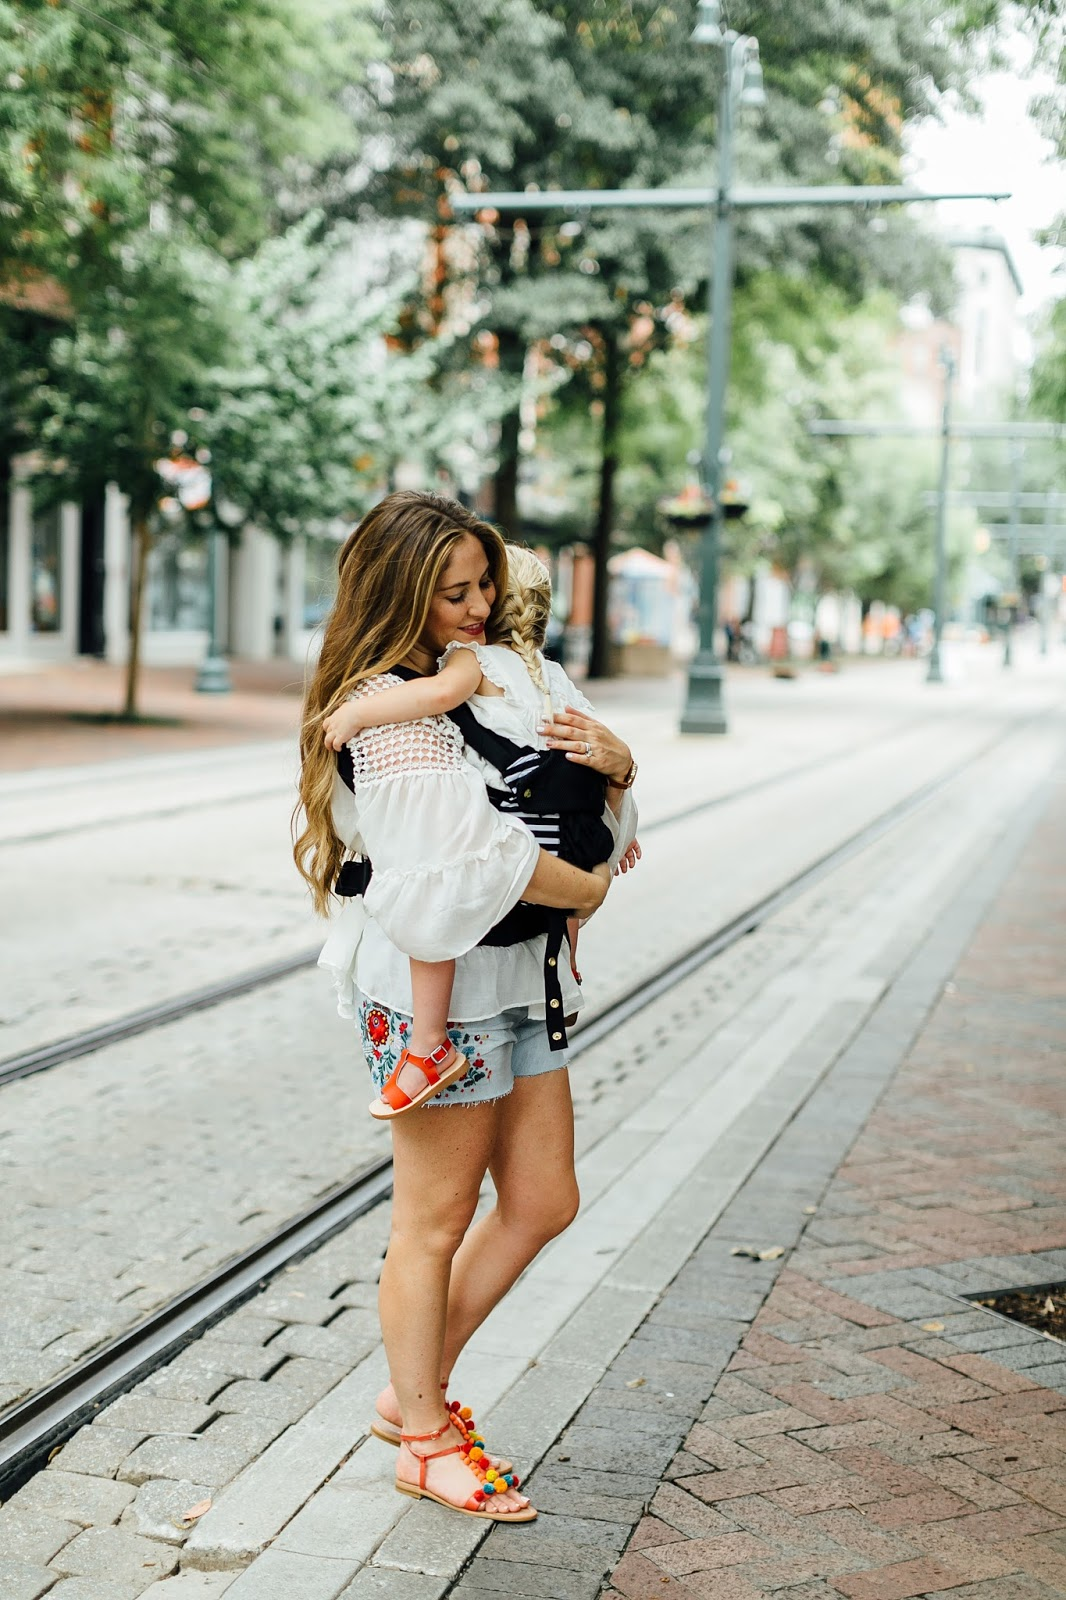 My 5 Favorite Kid Friendly Places in Downtown Memphis by popular blogger Laura of Walking in Memphis in High Heels